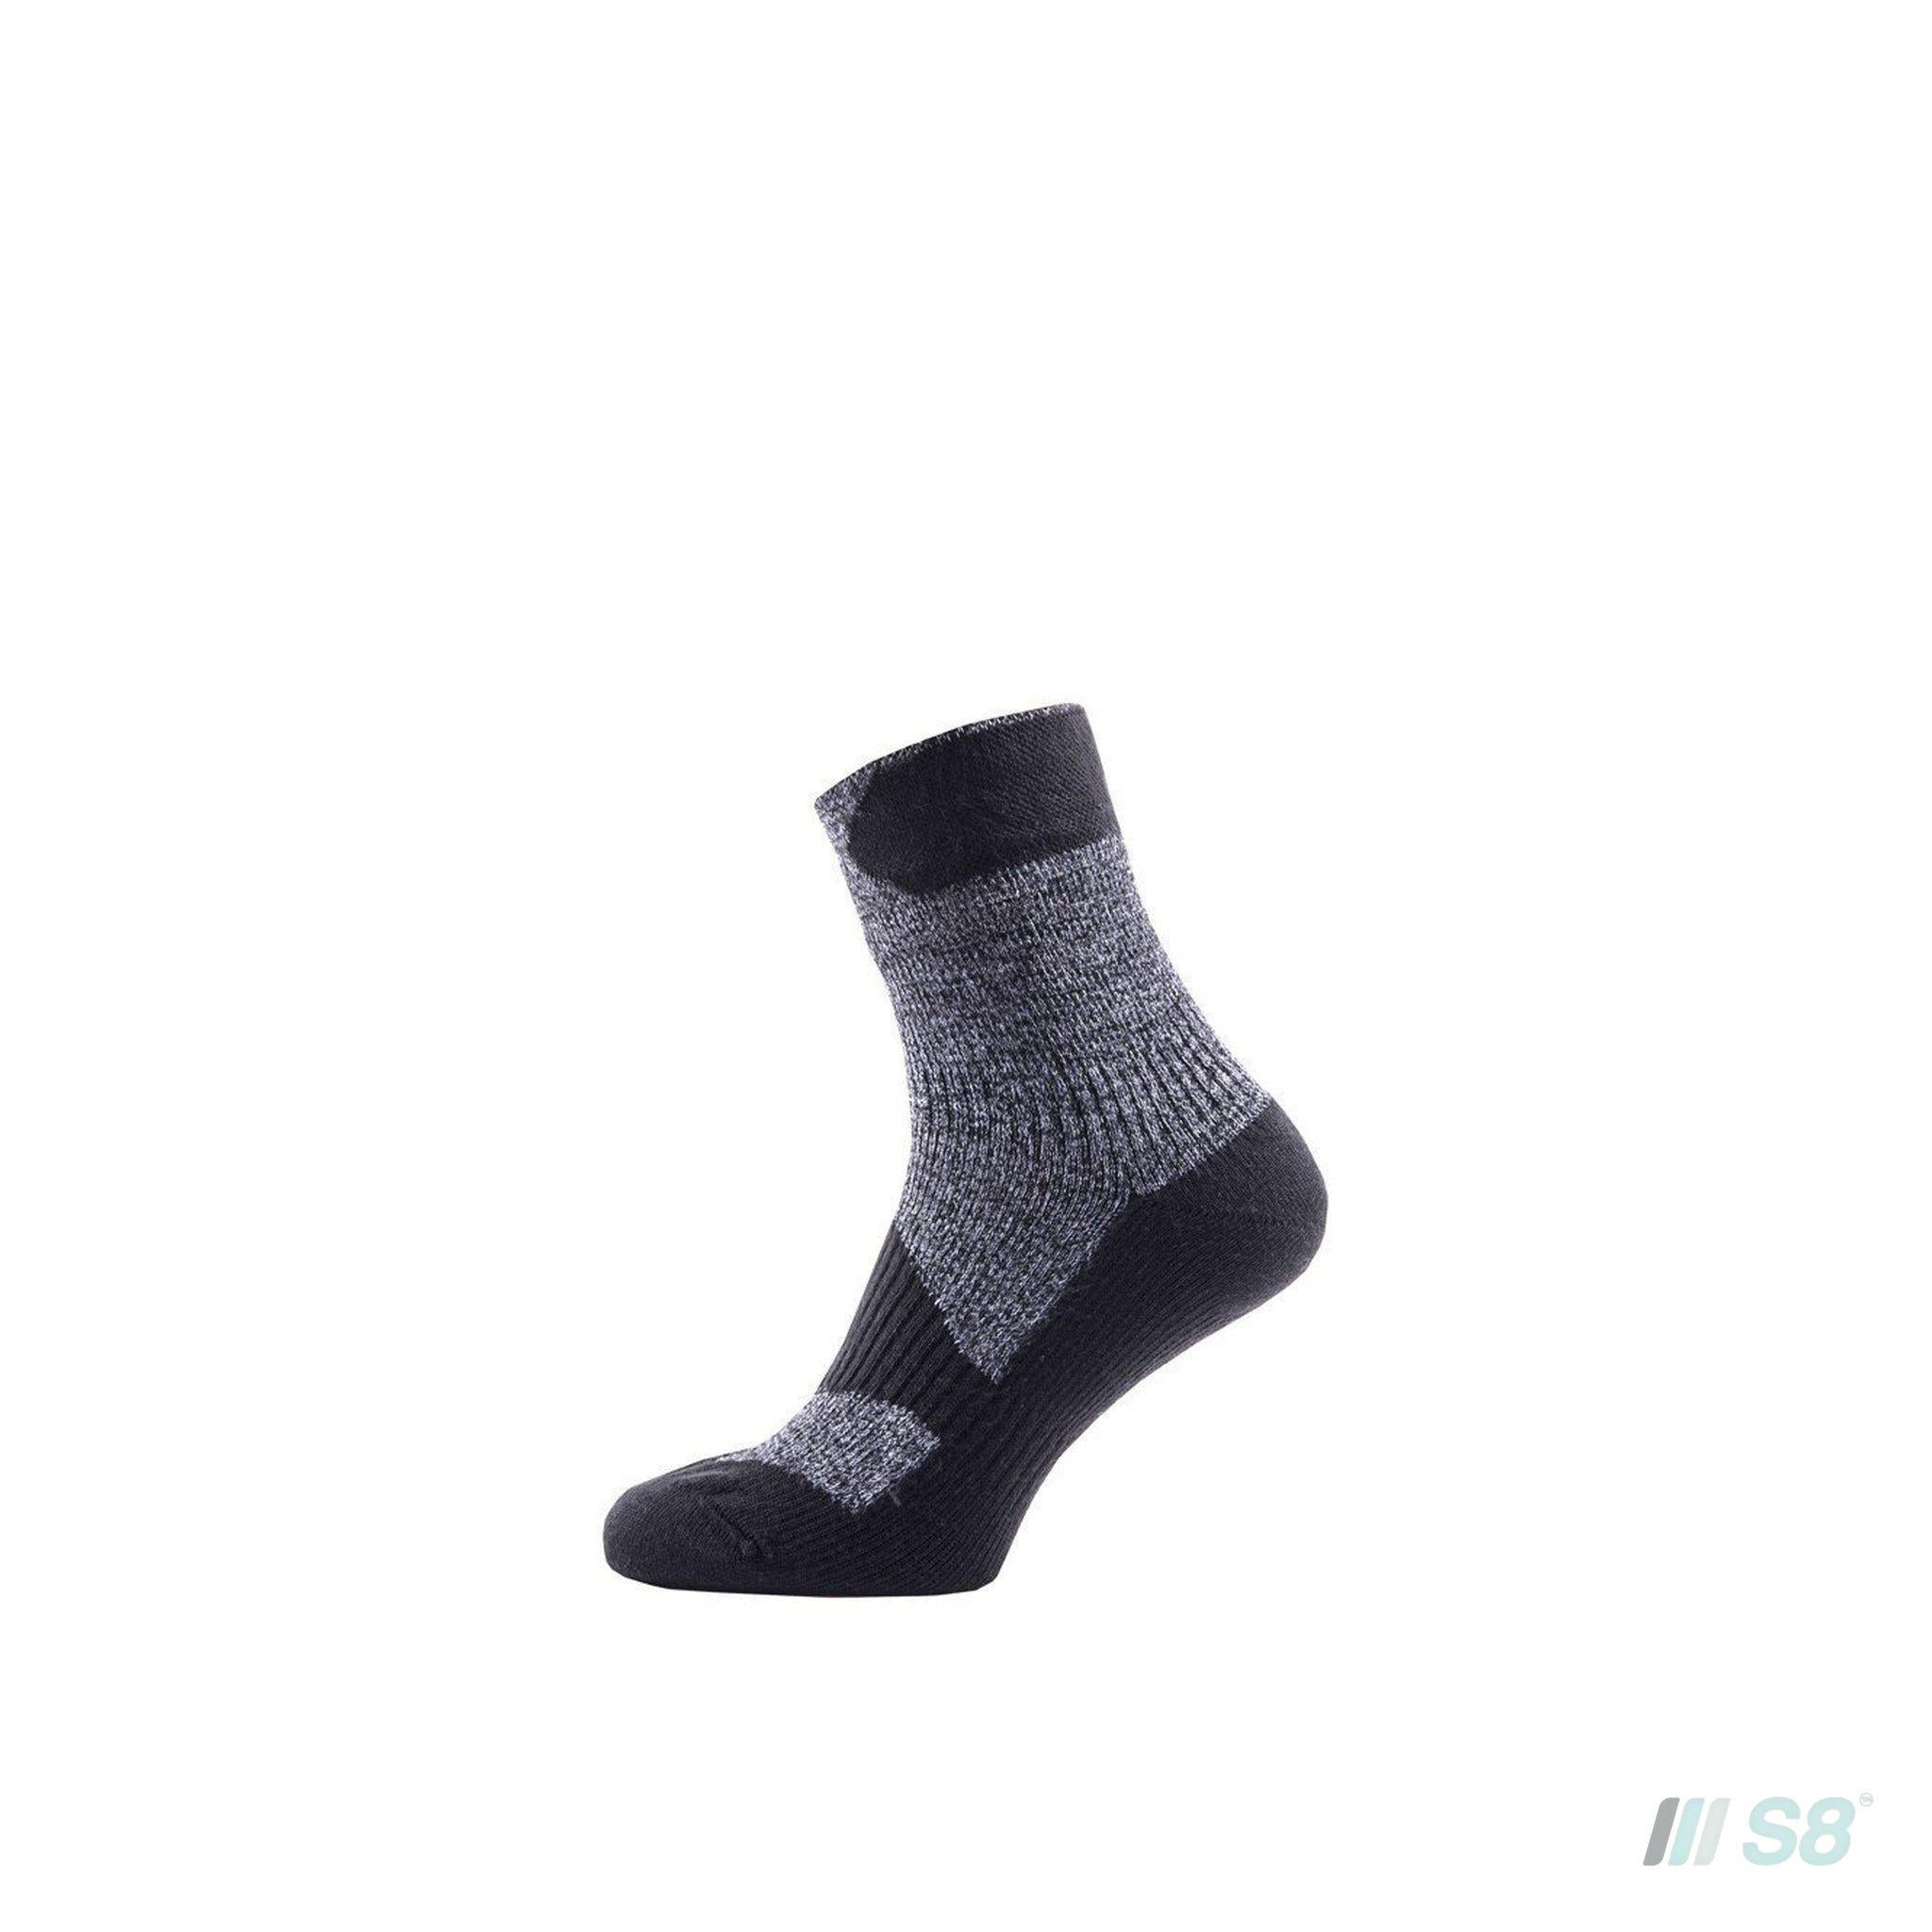 SEALSKINZ Walking THIN ANKLE Length Socks-SEALSKINZ-S8 Products Group